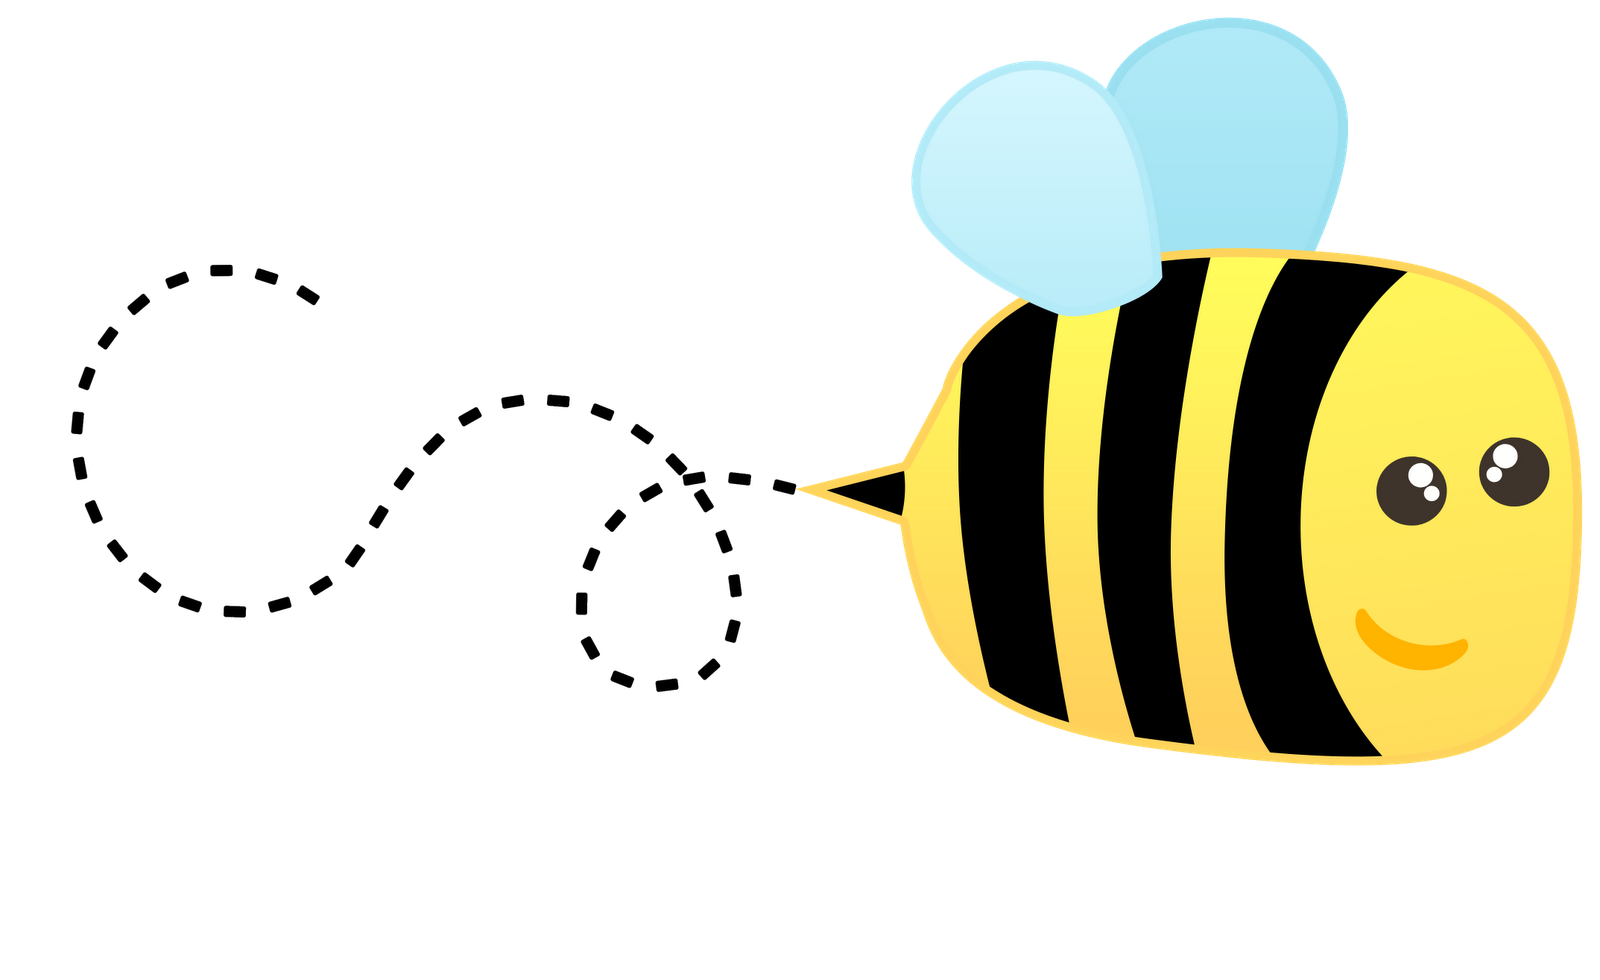 Buzzing bee google search. Photo clipart photoshoot